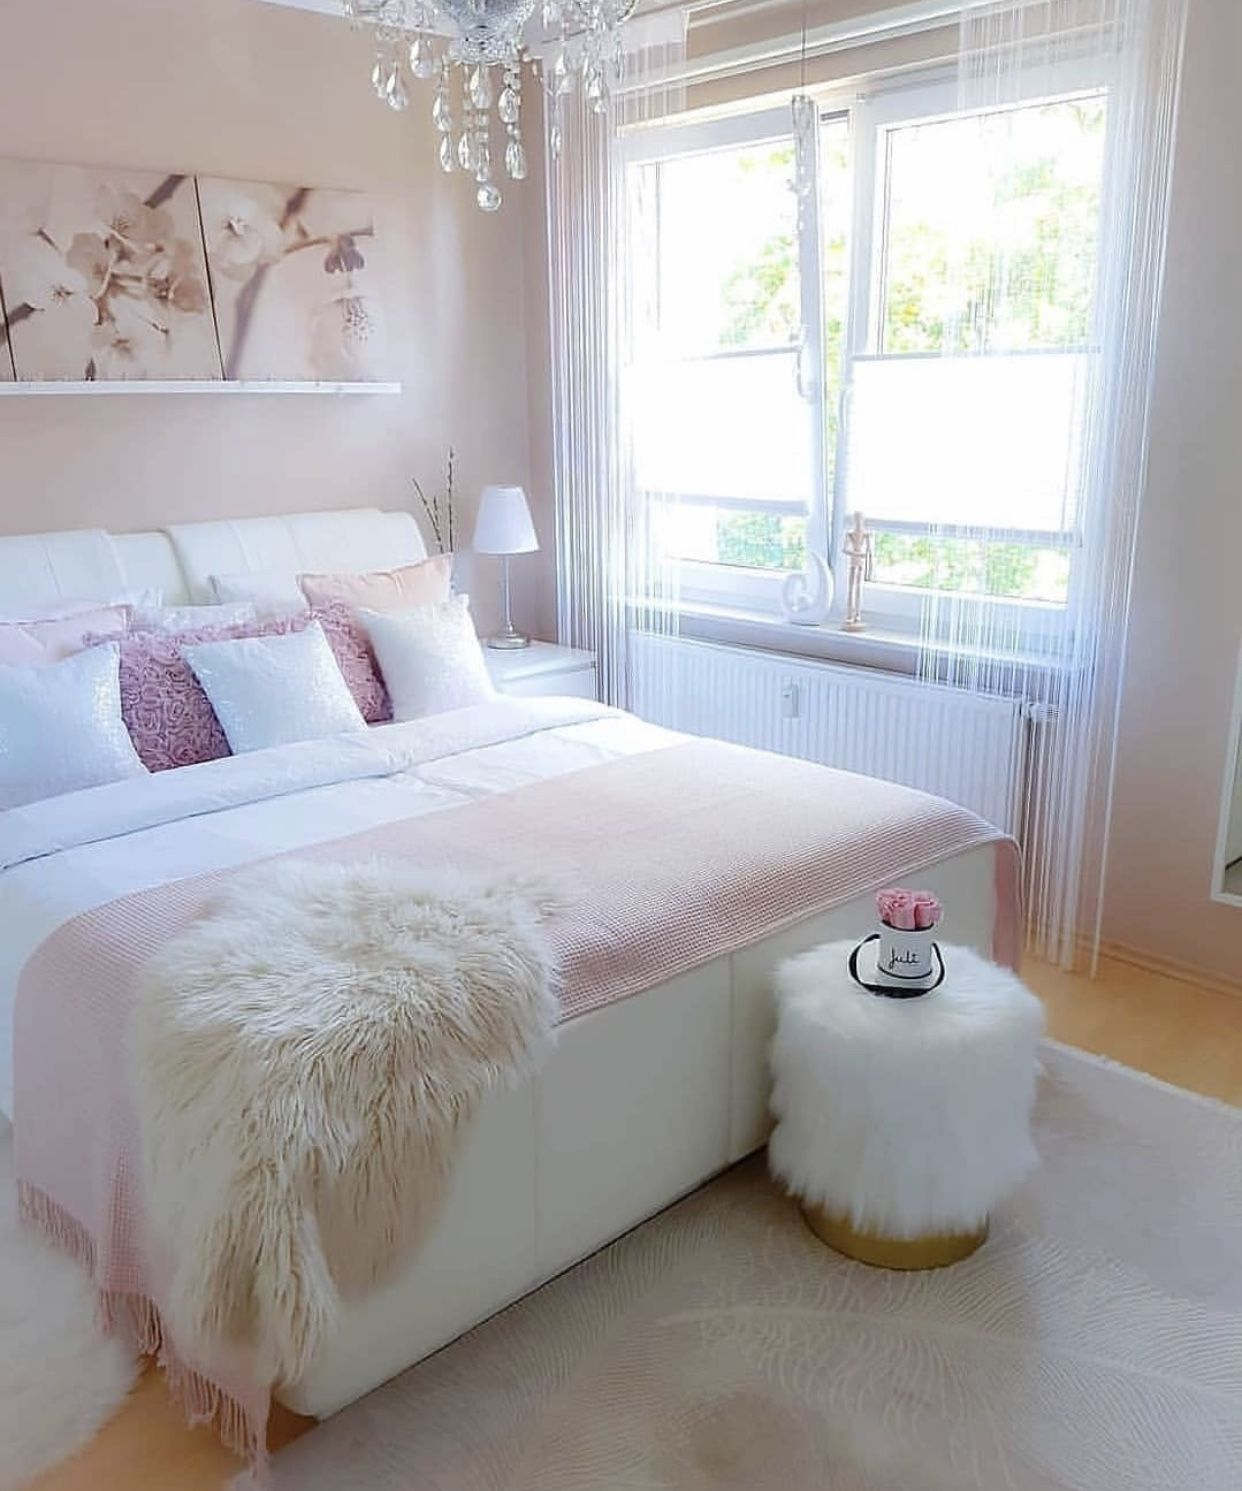 cozy and cute bedroom cozy living space ideas in 2019 on cute bedroom decor ideas for teen romantic bedroom decorating with light and color id=42583